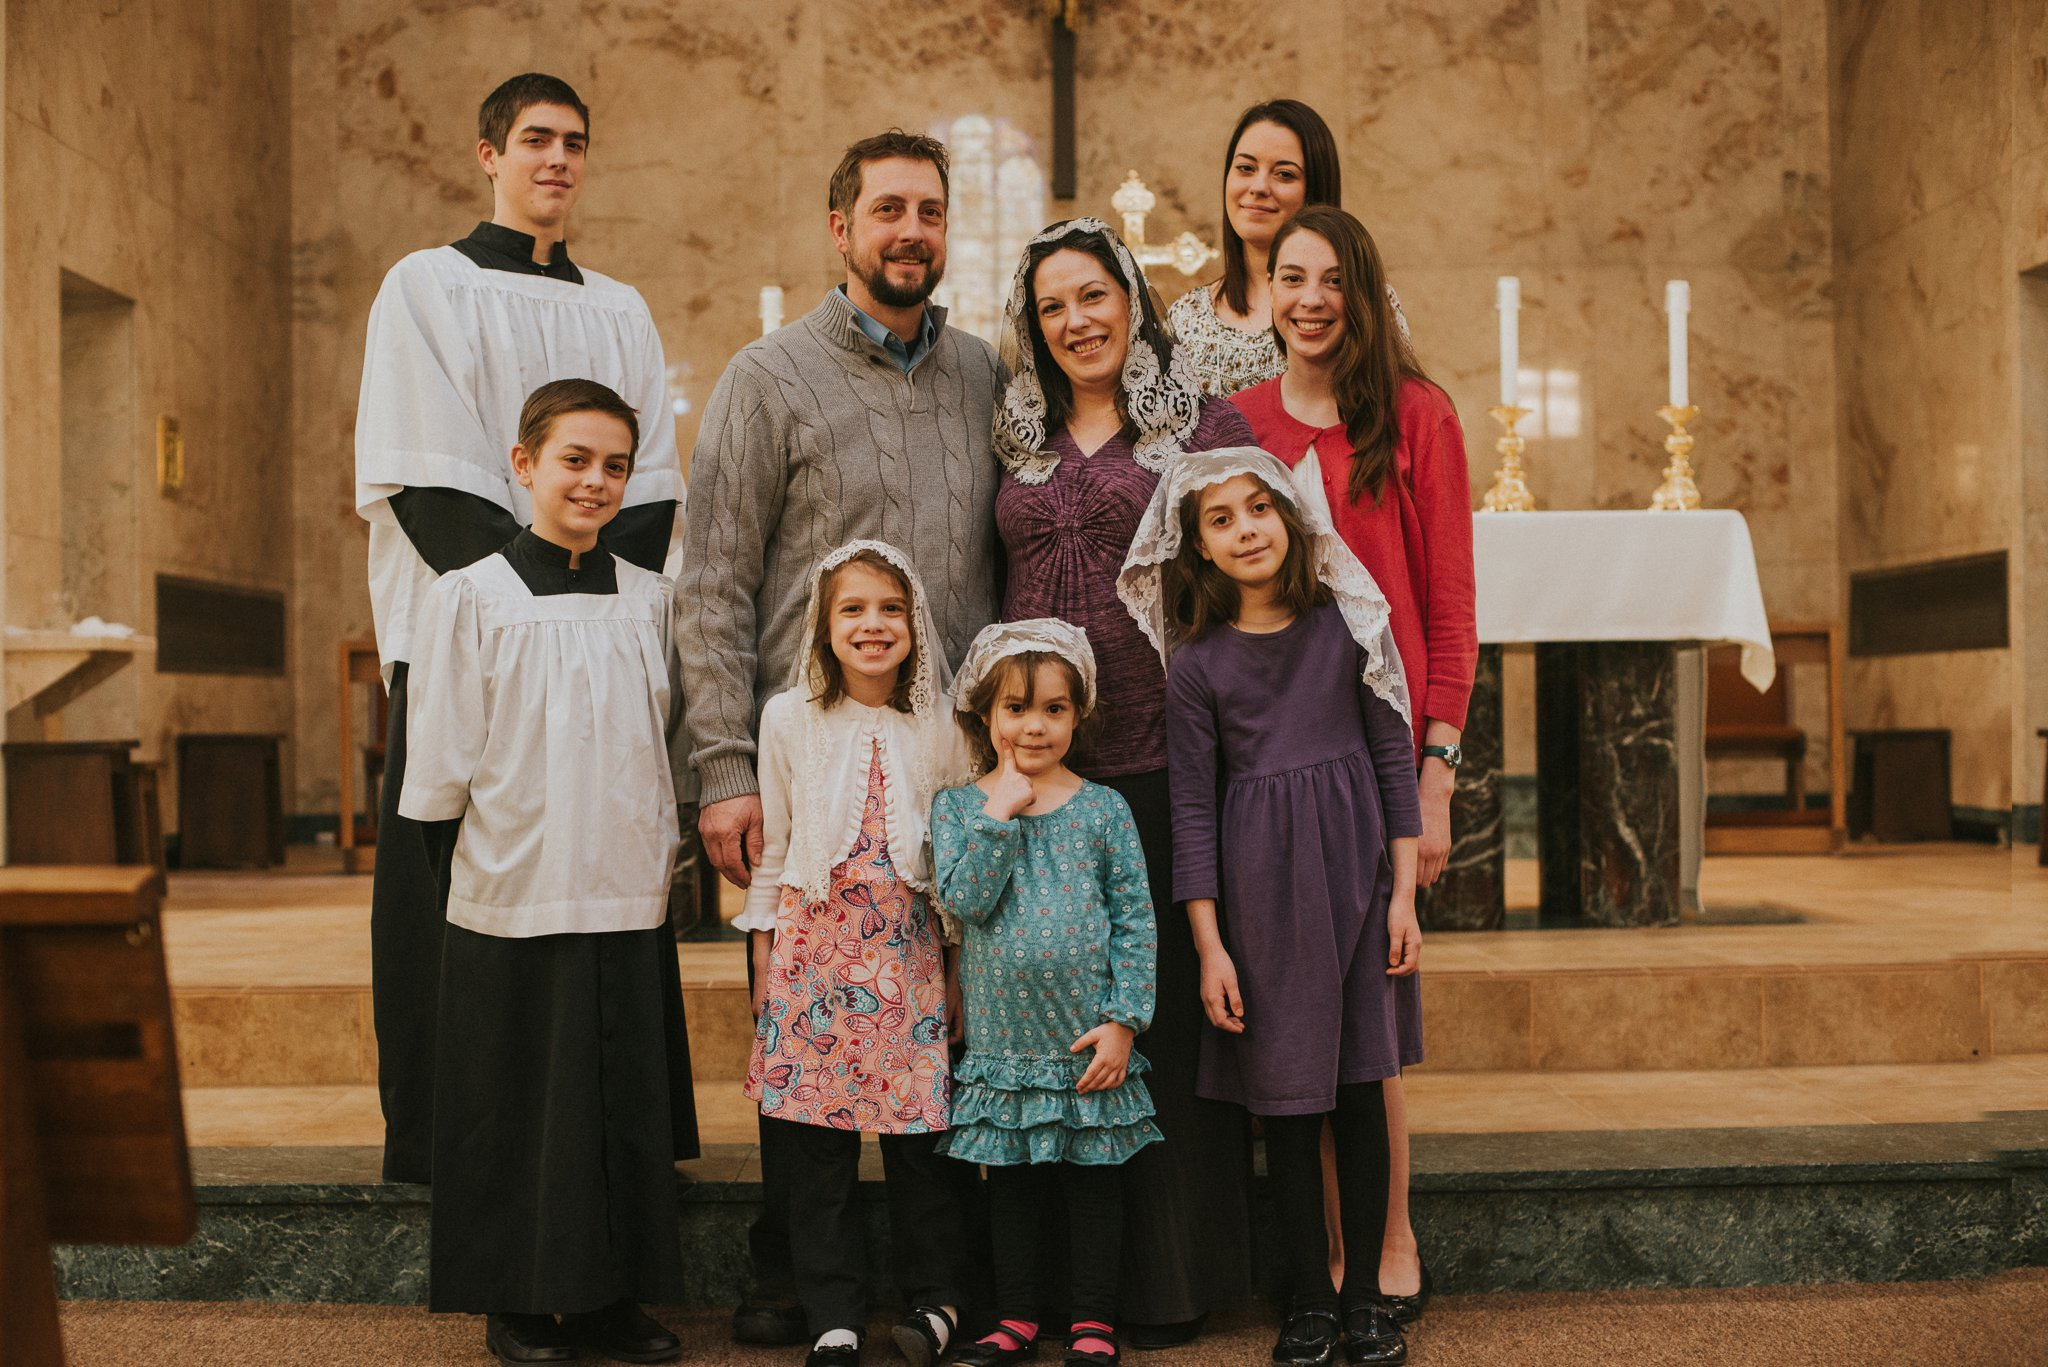 Family of 9 stand together at a church alter